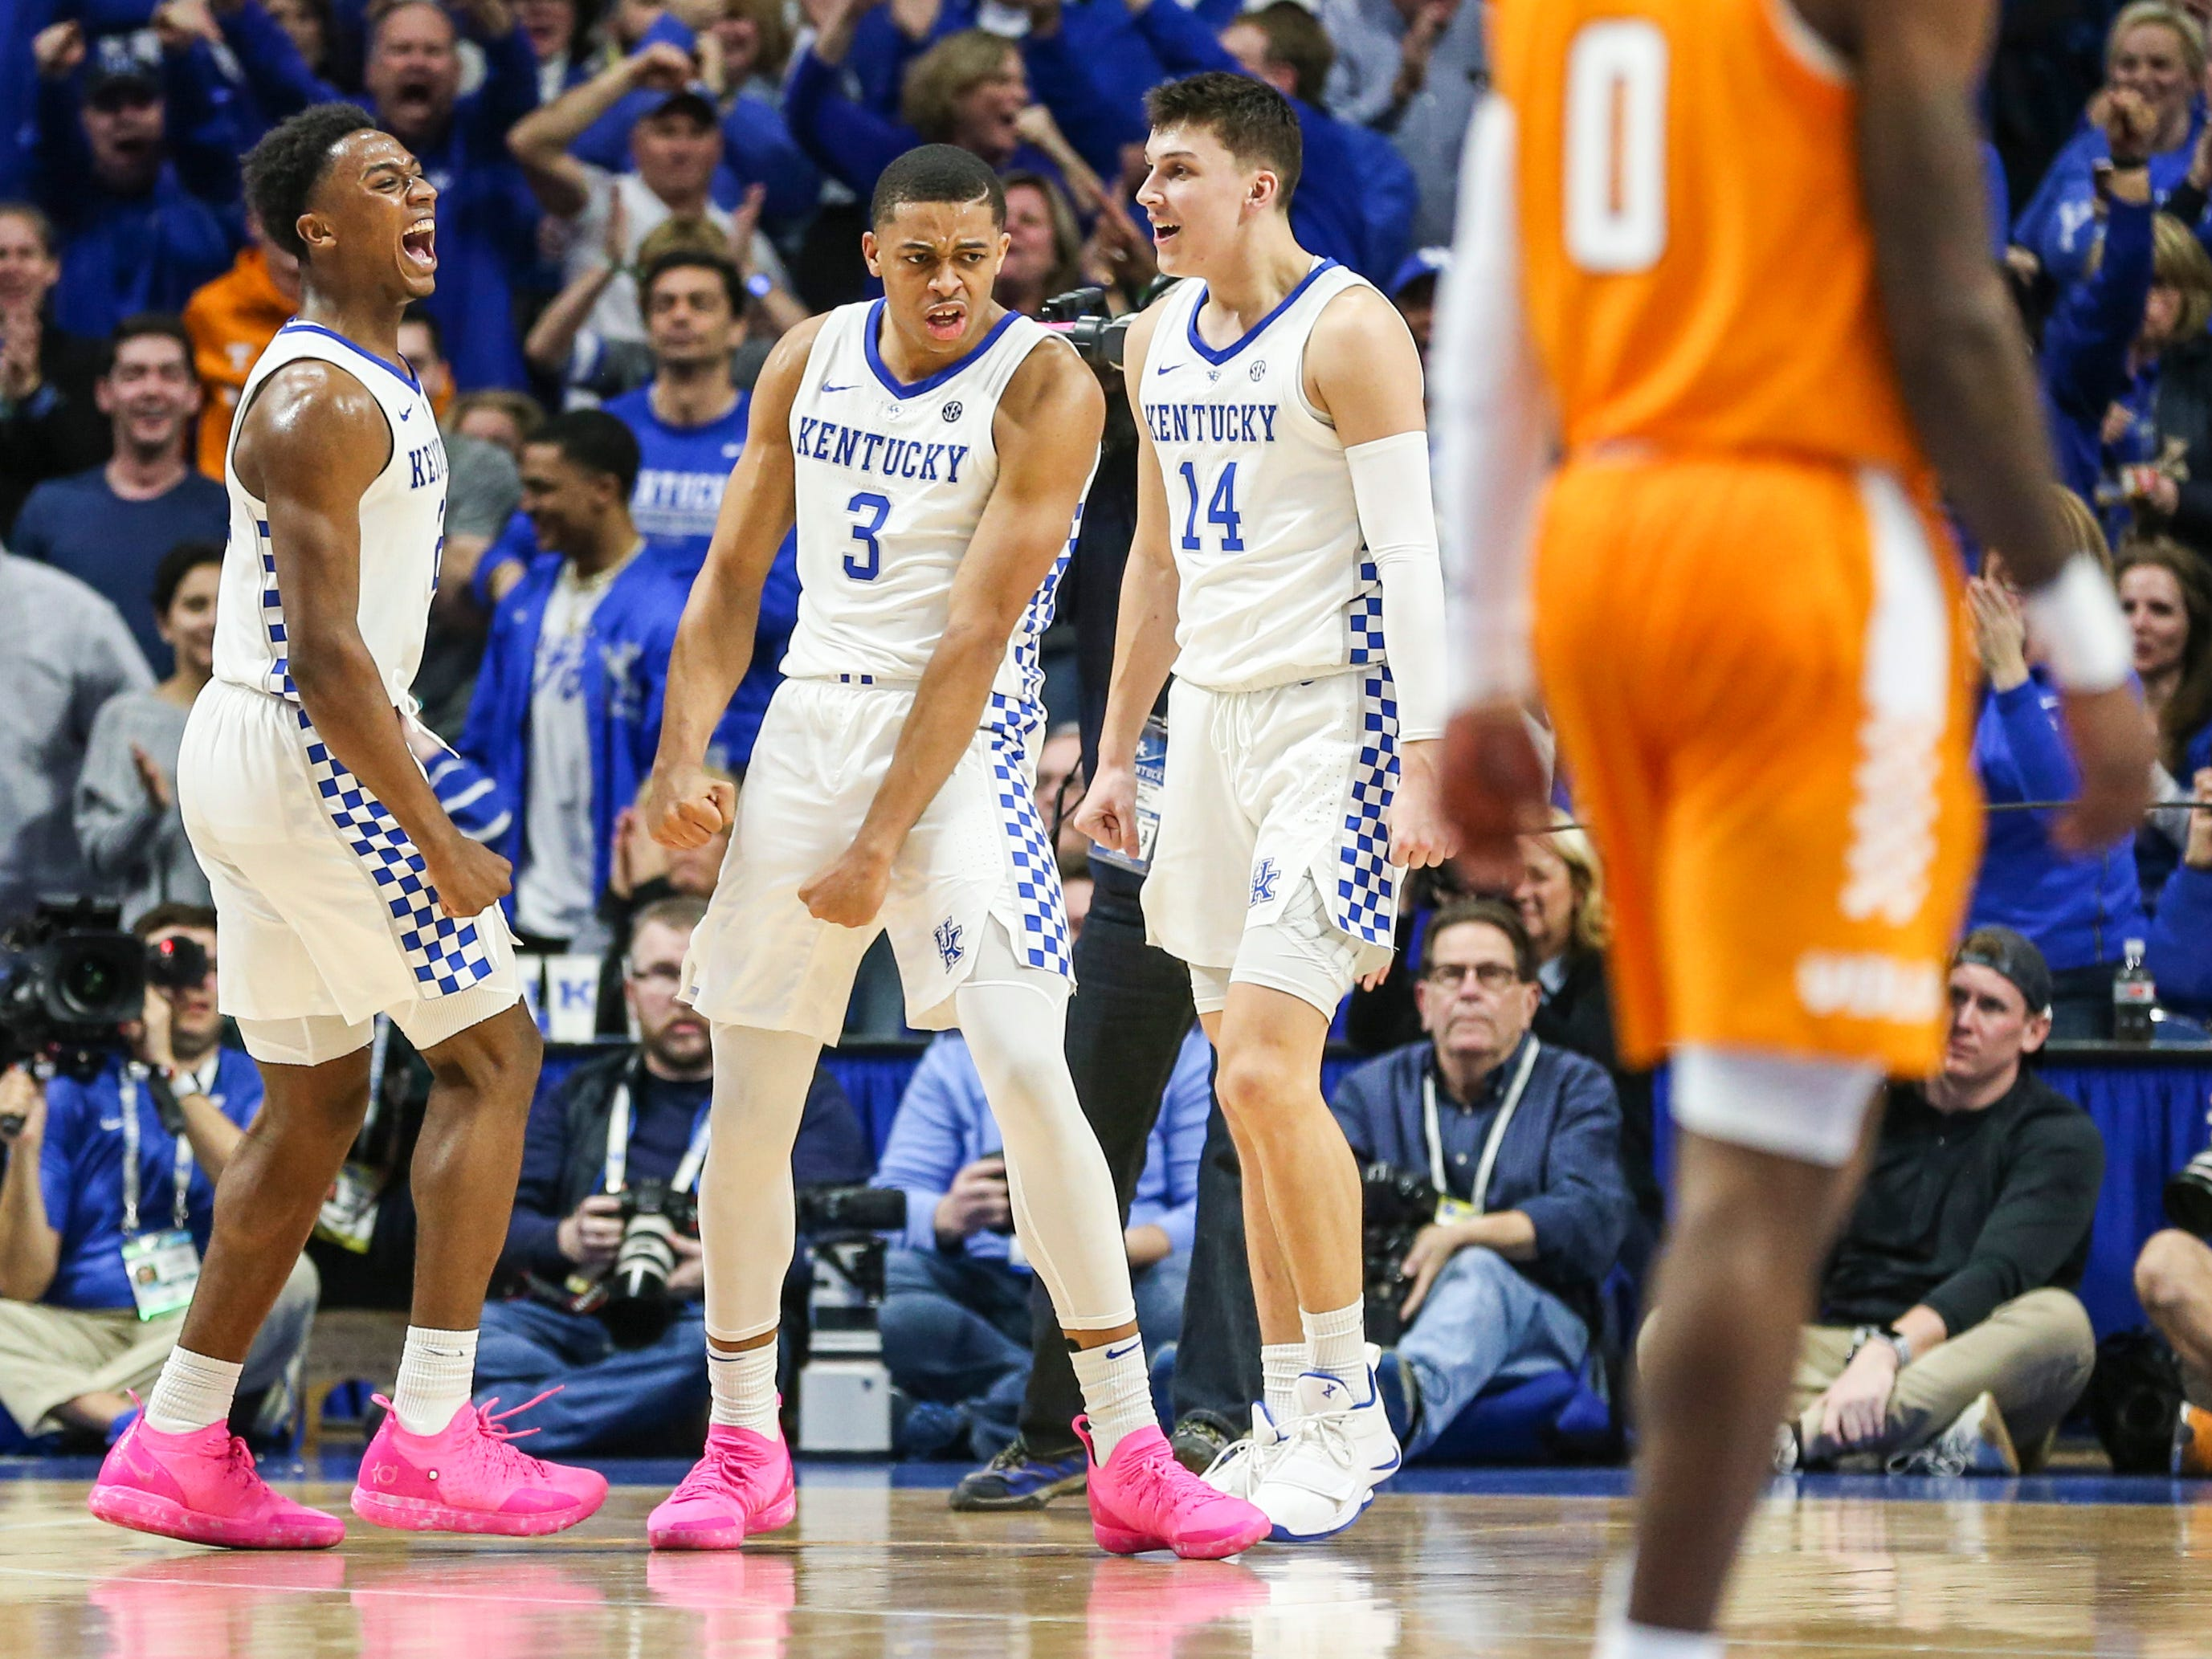 Kentucky's Keldon Johnson celebrates with Ashton Hagans in the second half during the Wildcats' win over No. 1 Tennessee 86-69 Saturday night. Herro finished with 15 points and 13 rebounds and three assists. Feb. 16, 2019